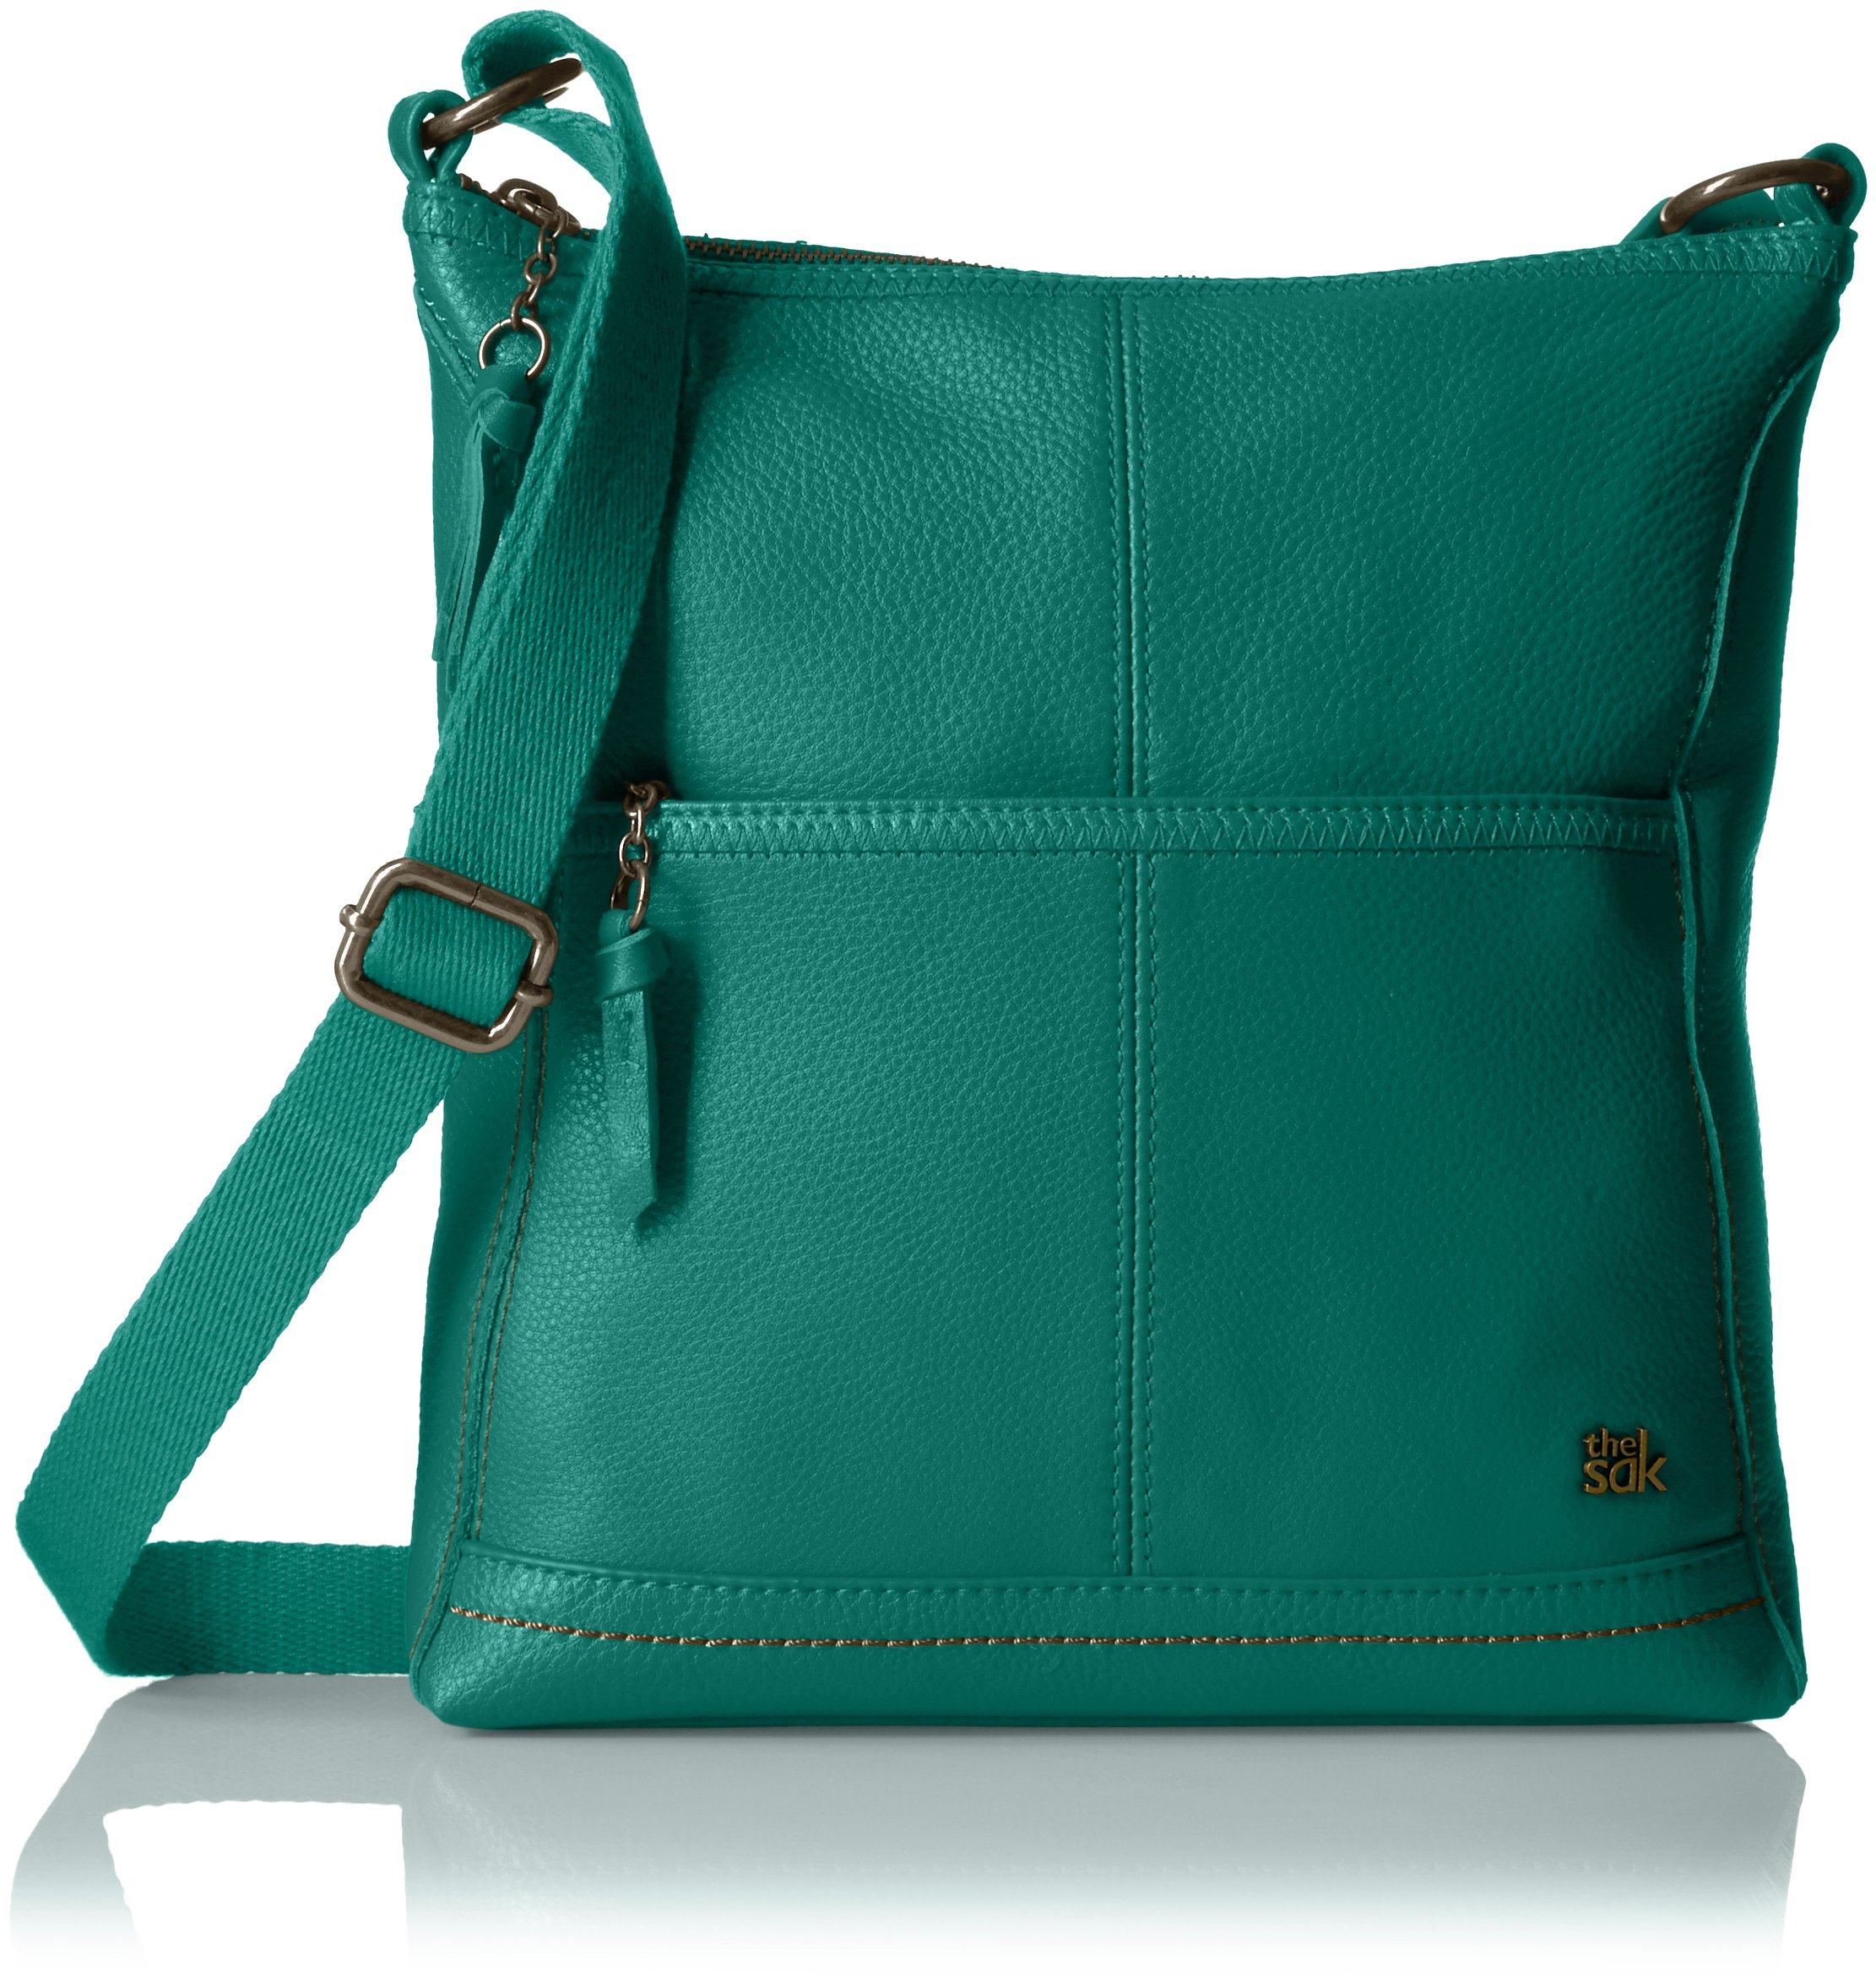 The Sak Iris Crossbody, Emerald